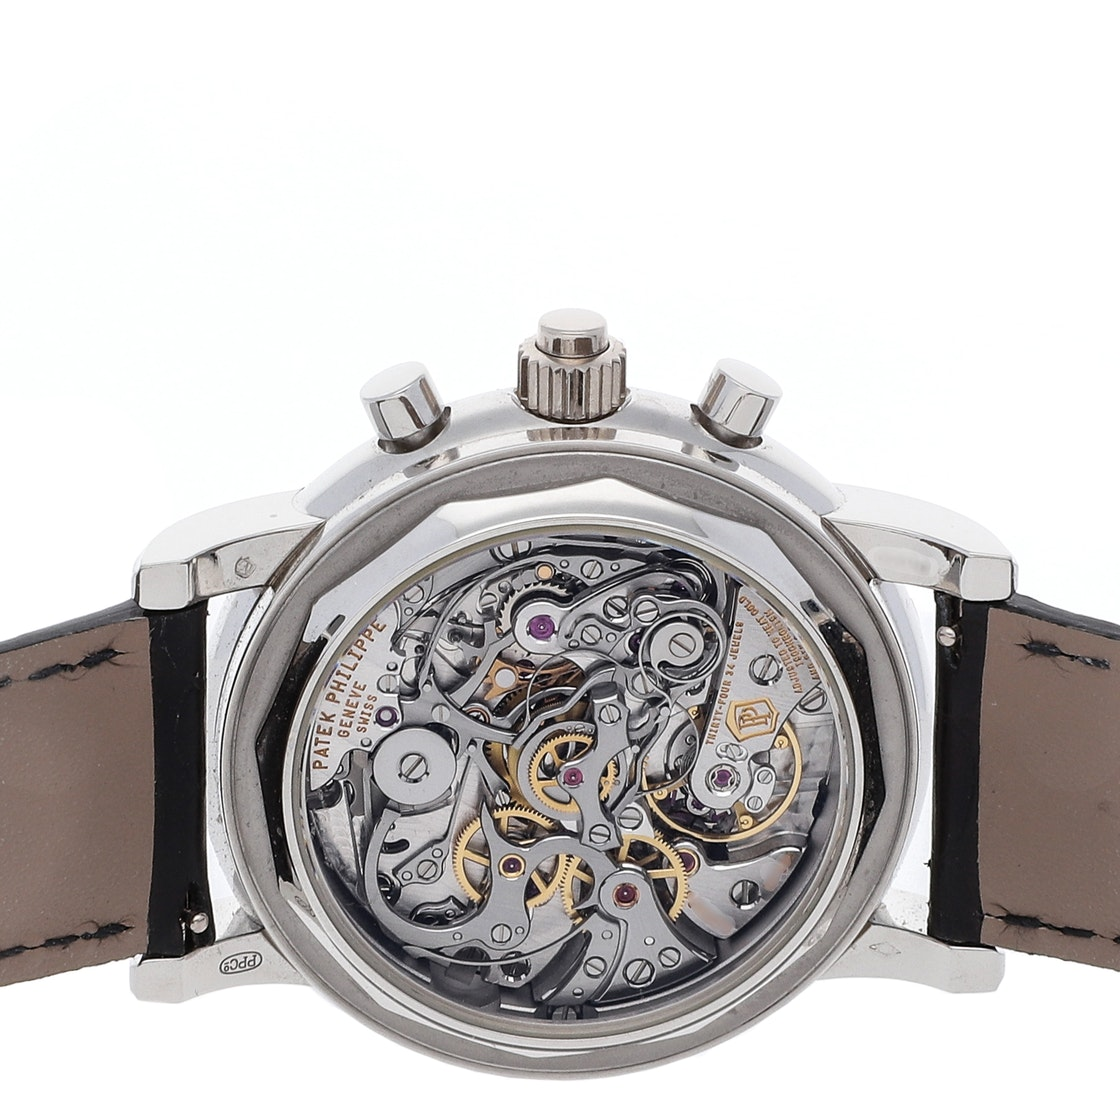 Patek Philippe Grand Complications Perpetual Calendar Split-Seconds Chronograph 5204P-011